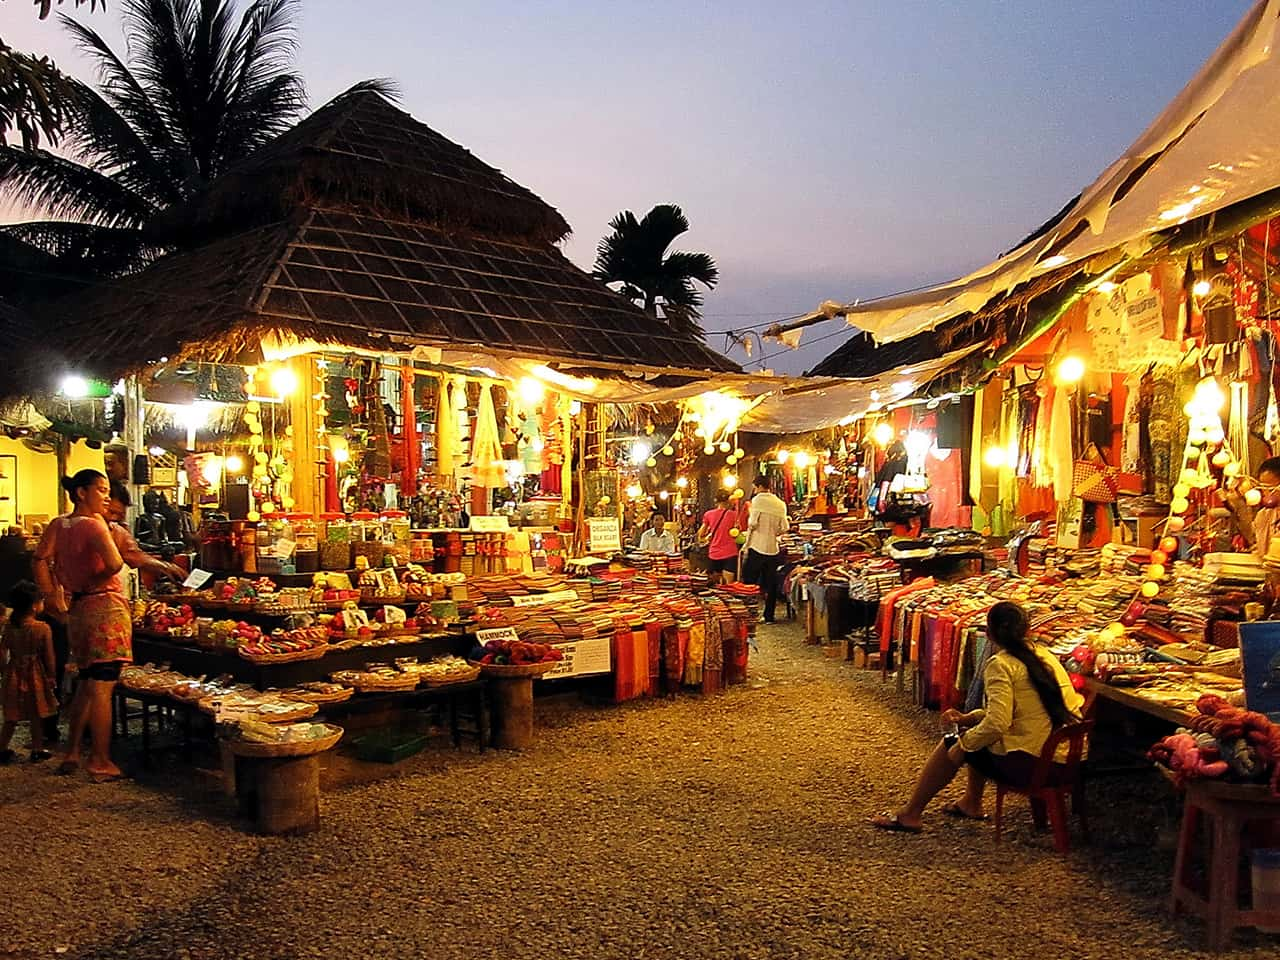 Asia images Siem Reap Cambodia HD wallpaper and background photos 1280x960